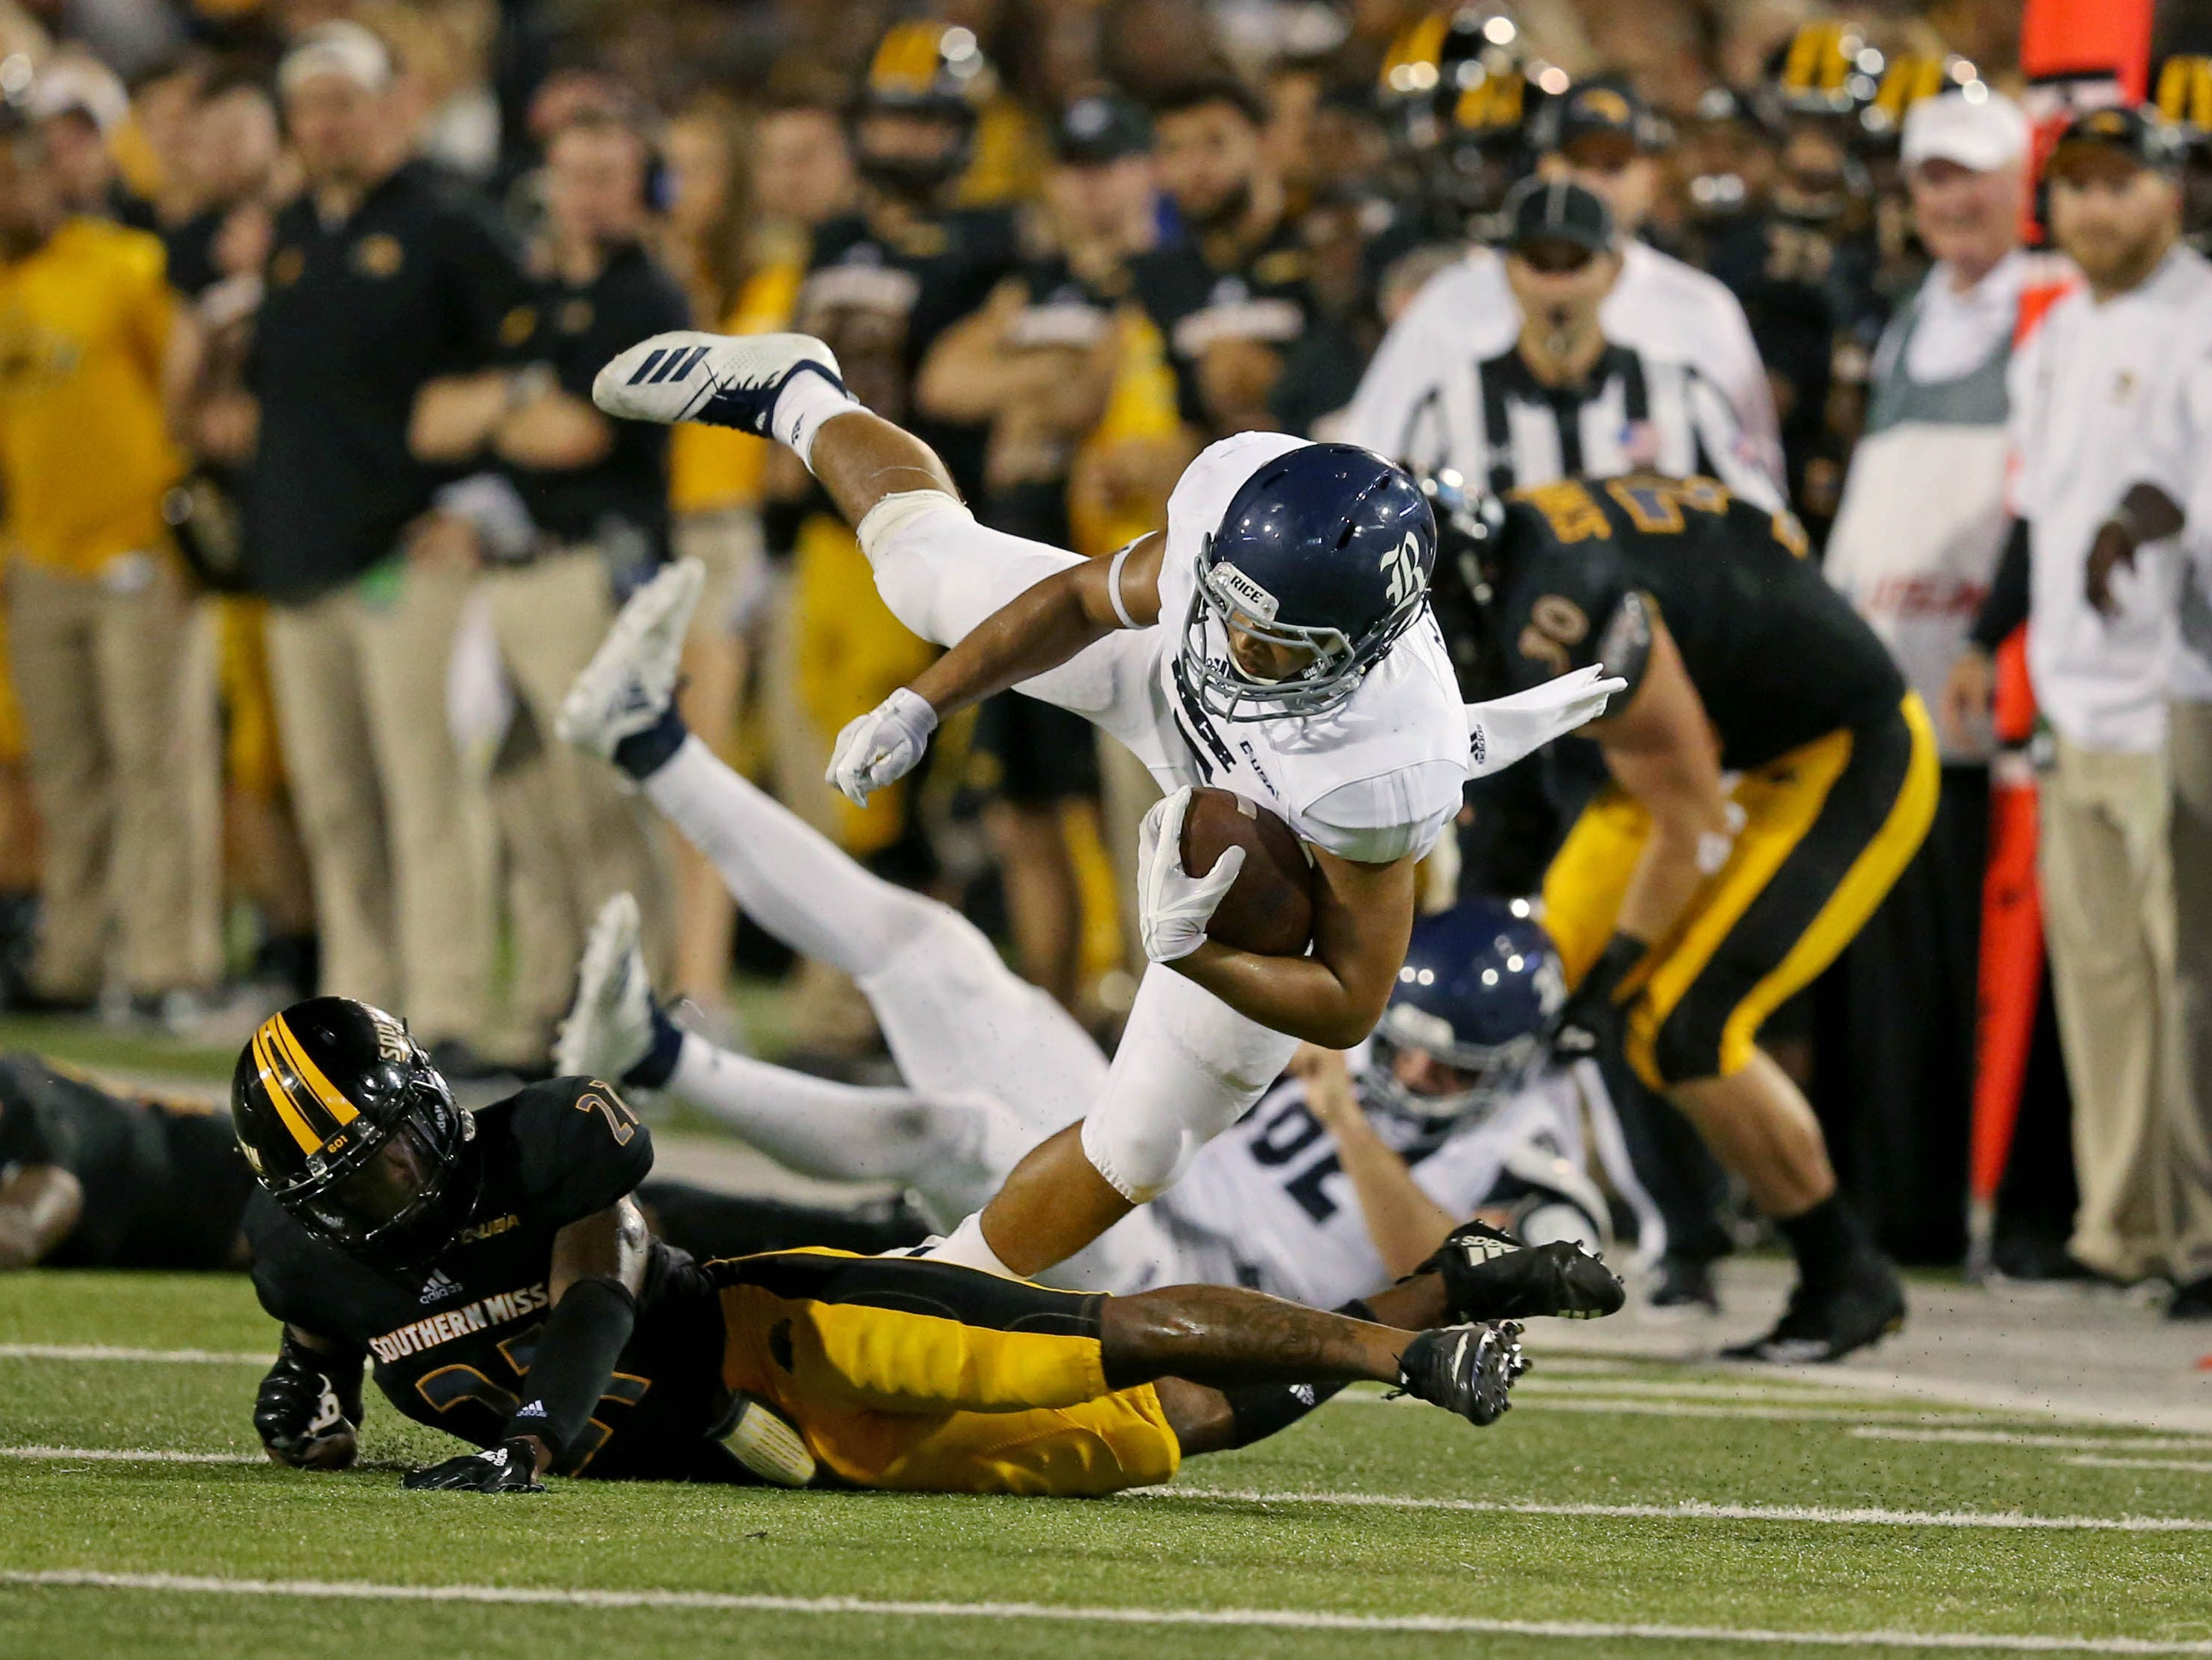 Rice Owls tight end Jordan Myers (7) is tackled by Southern Miss Golden Eagles defensive back Rachuan Mitchell (21) in the second half at M. M. Roberts Stadium.